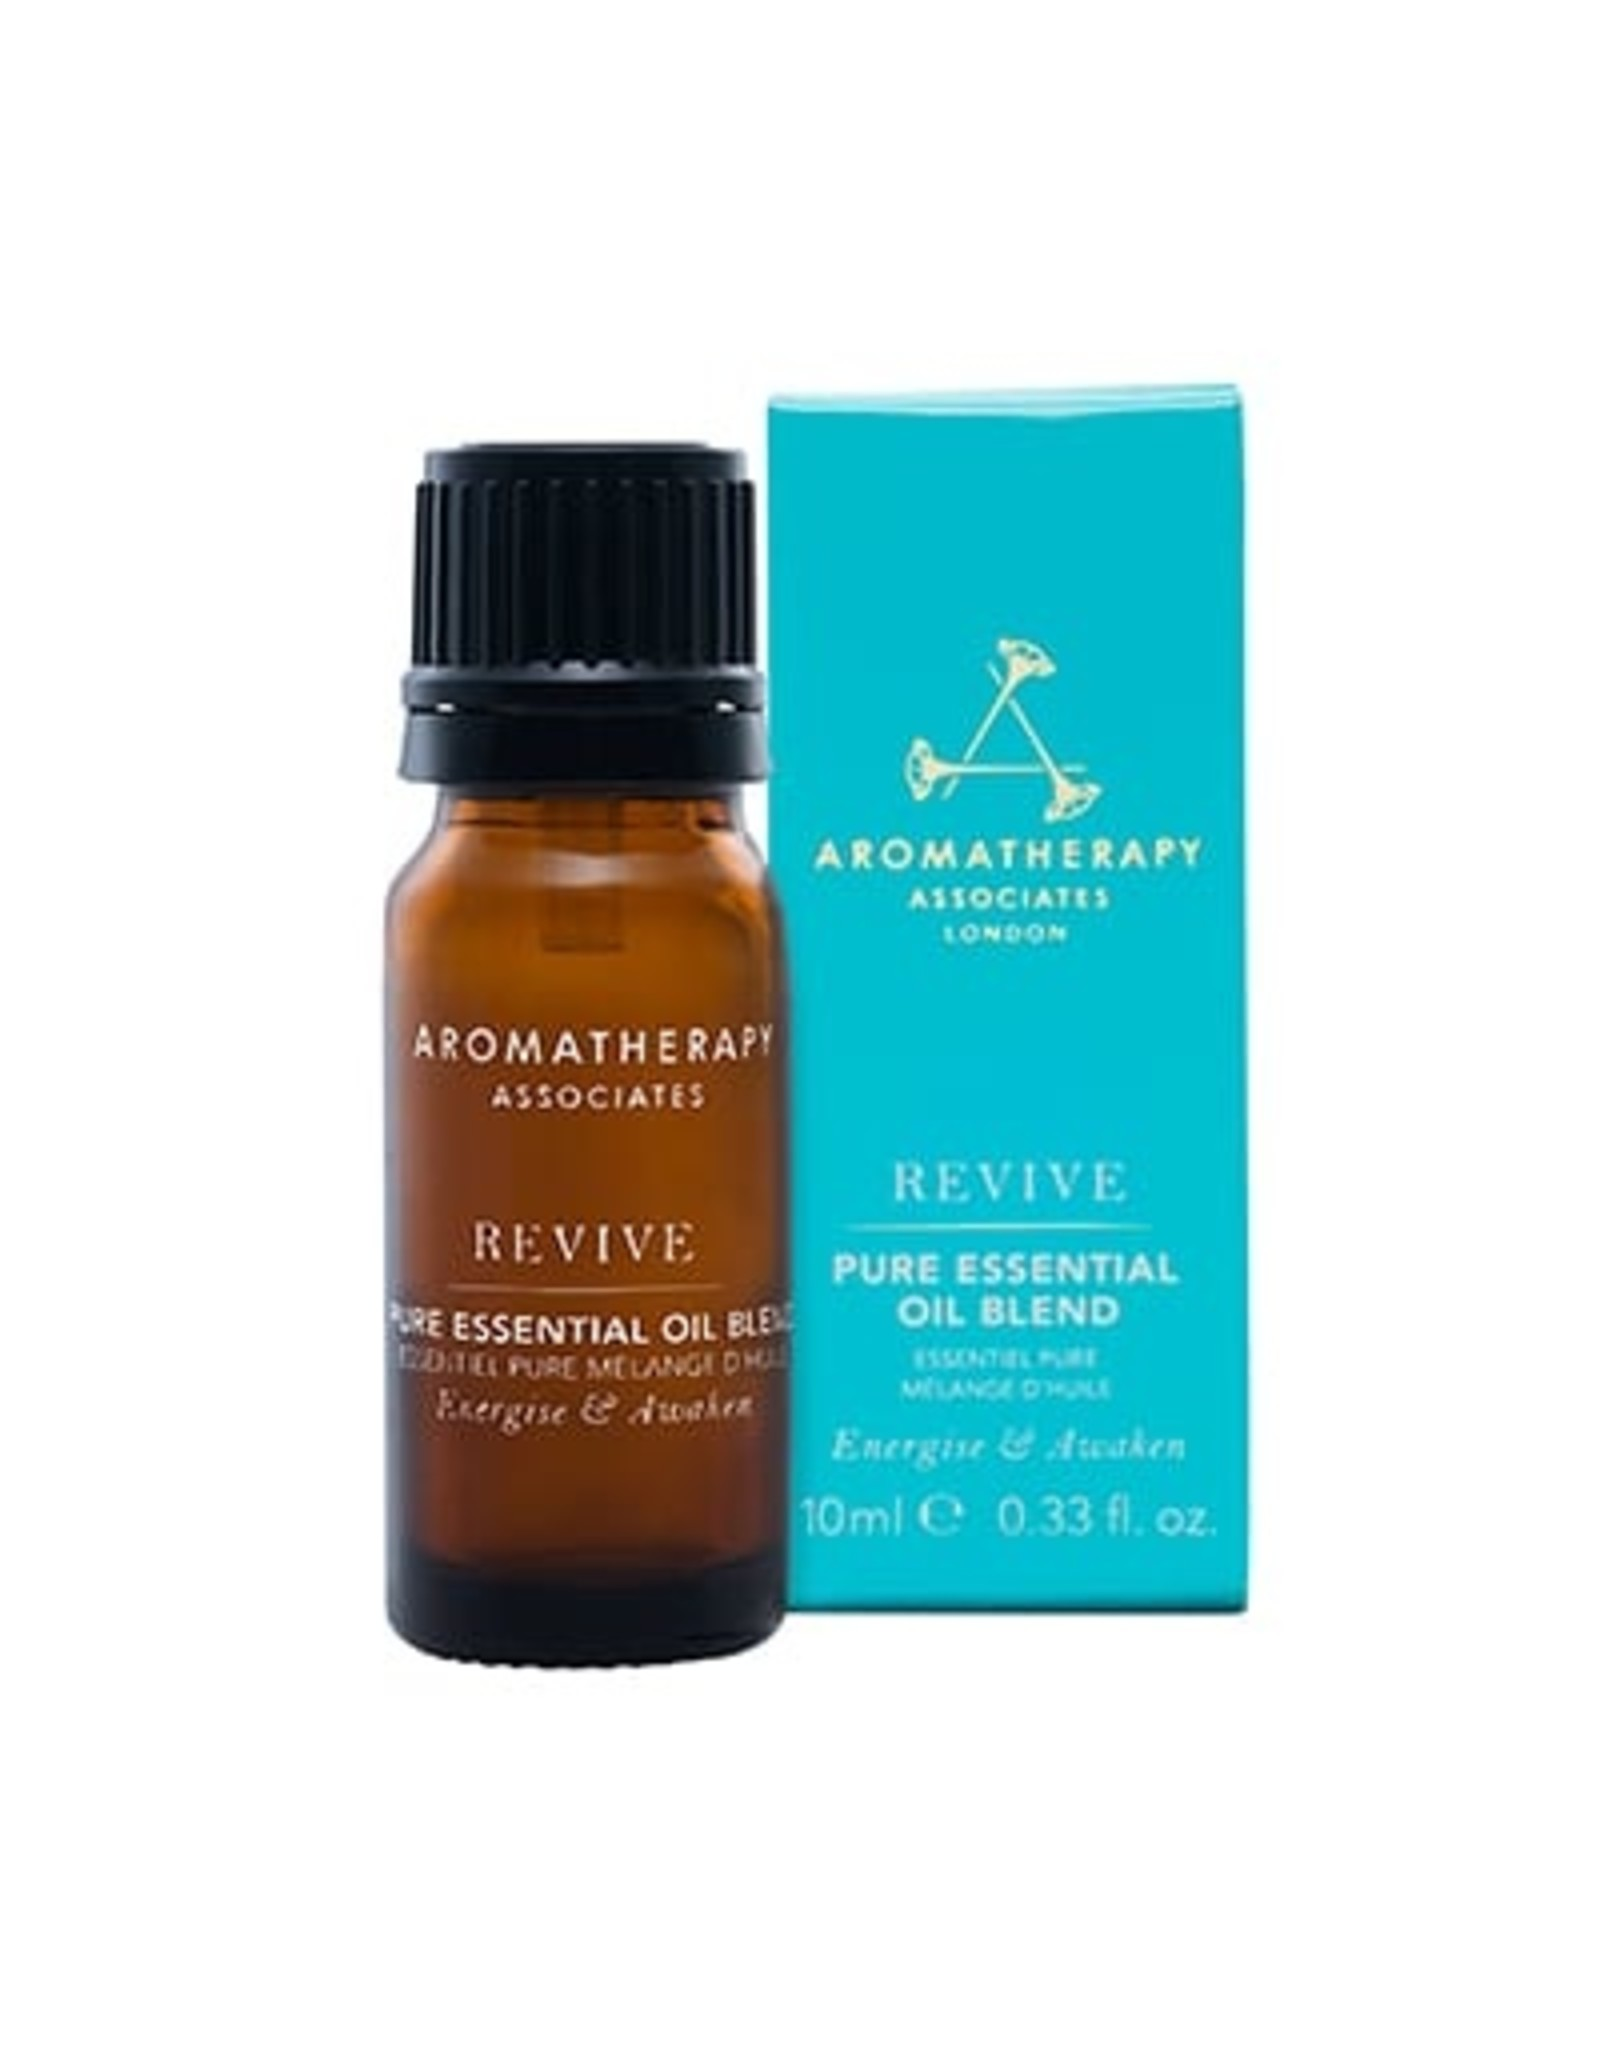 Aromatherapy Revive Pure Essential Oil Blend, 10ml